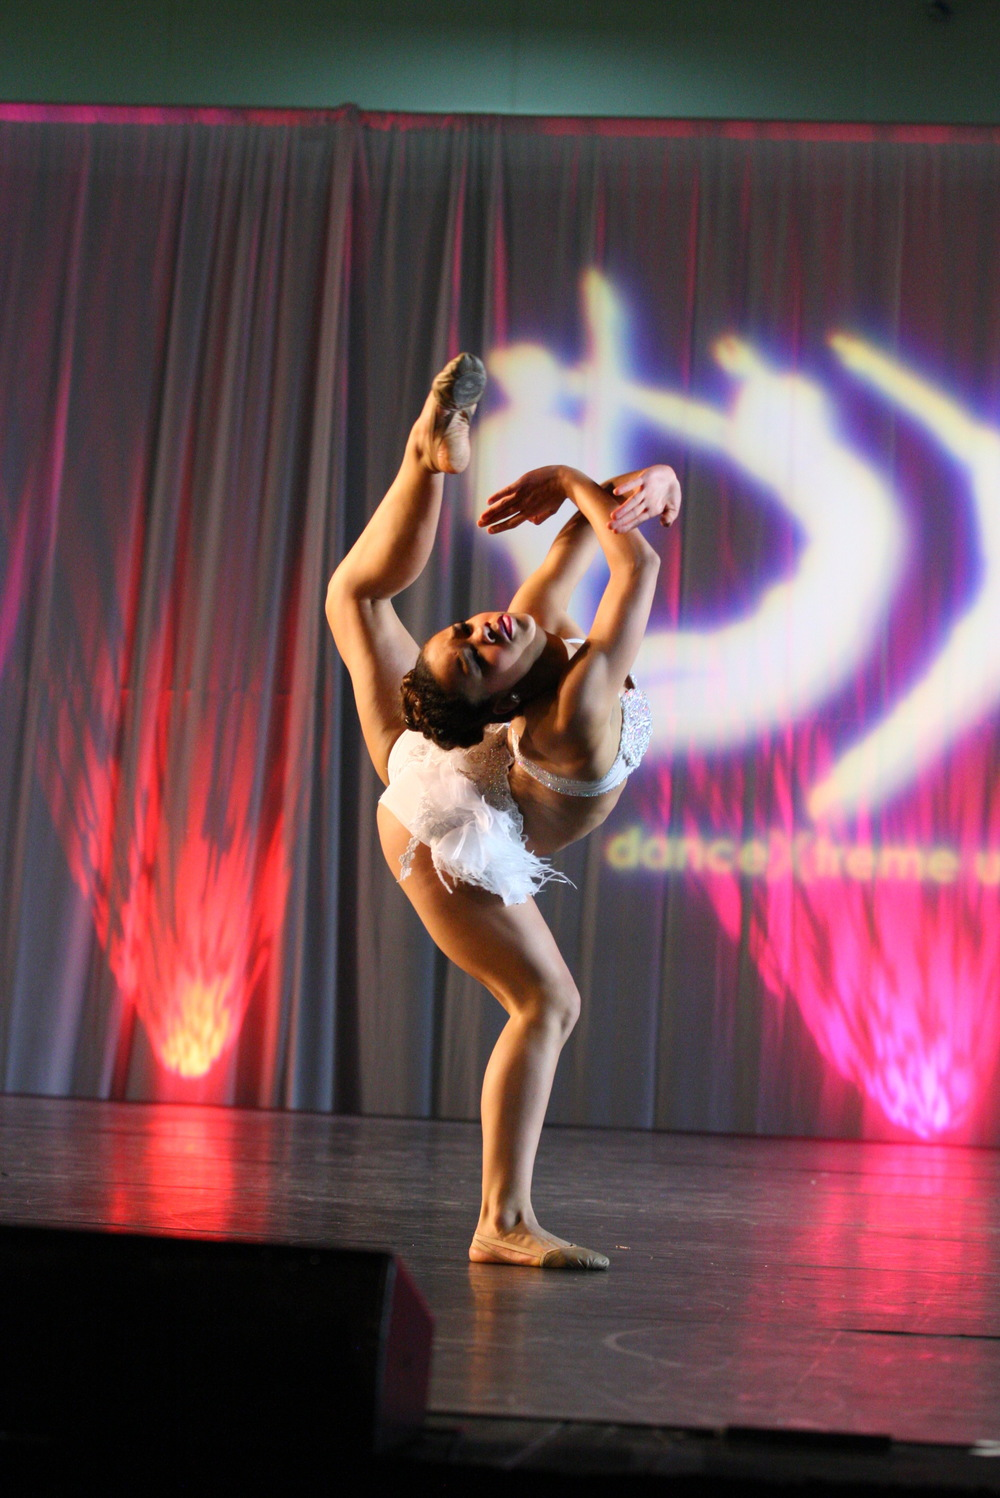 2013 - Malia Oliver from Larkin Dance Studio